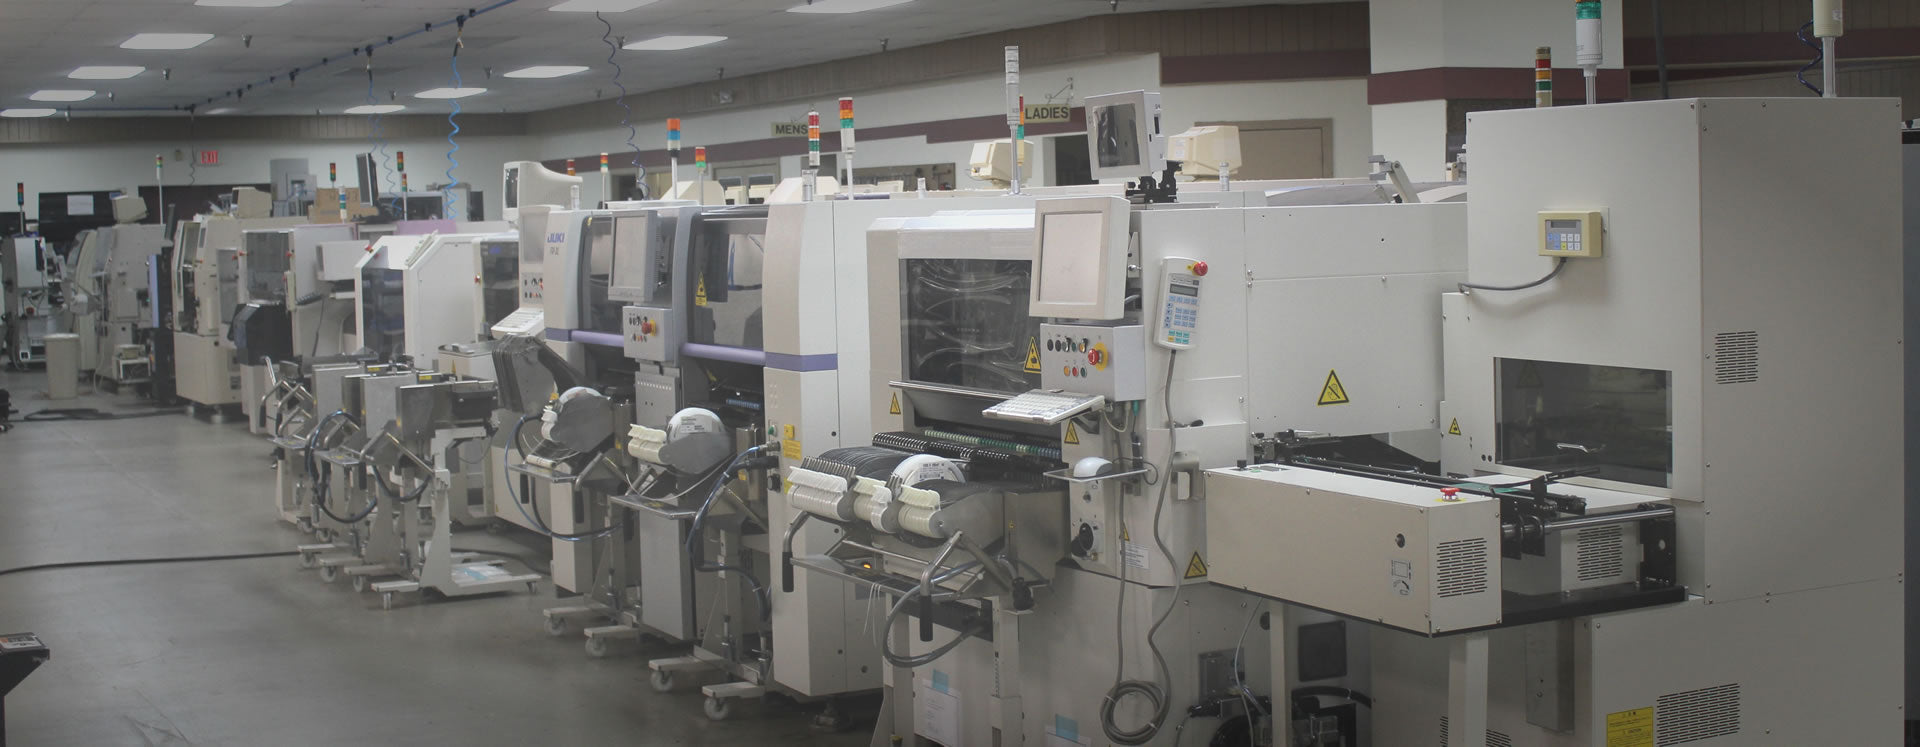 PFI Parts LLC Juki Pick and Place Machines